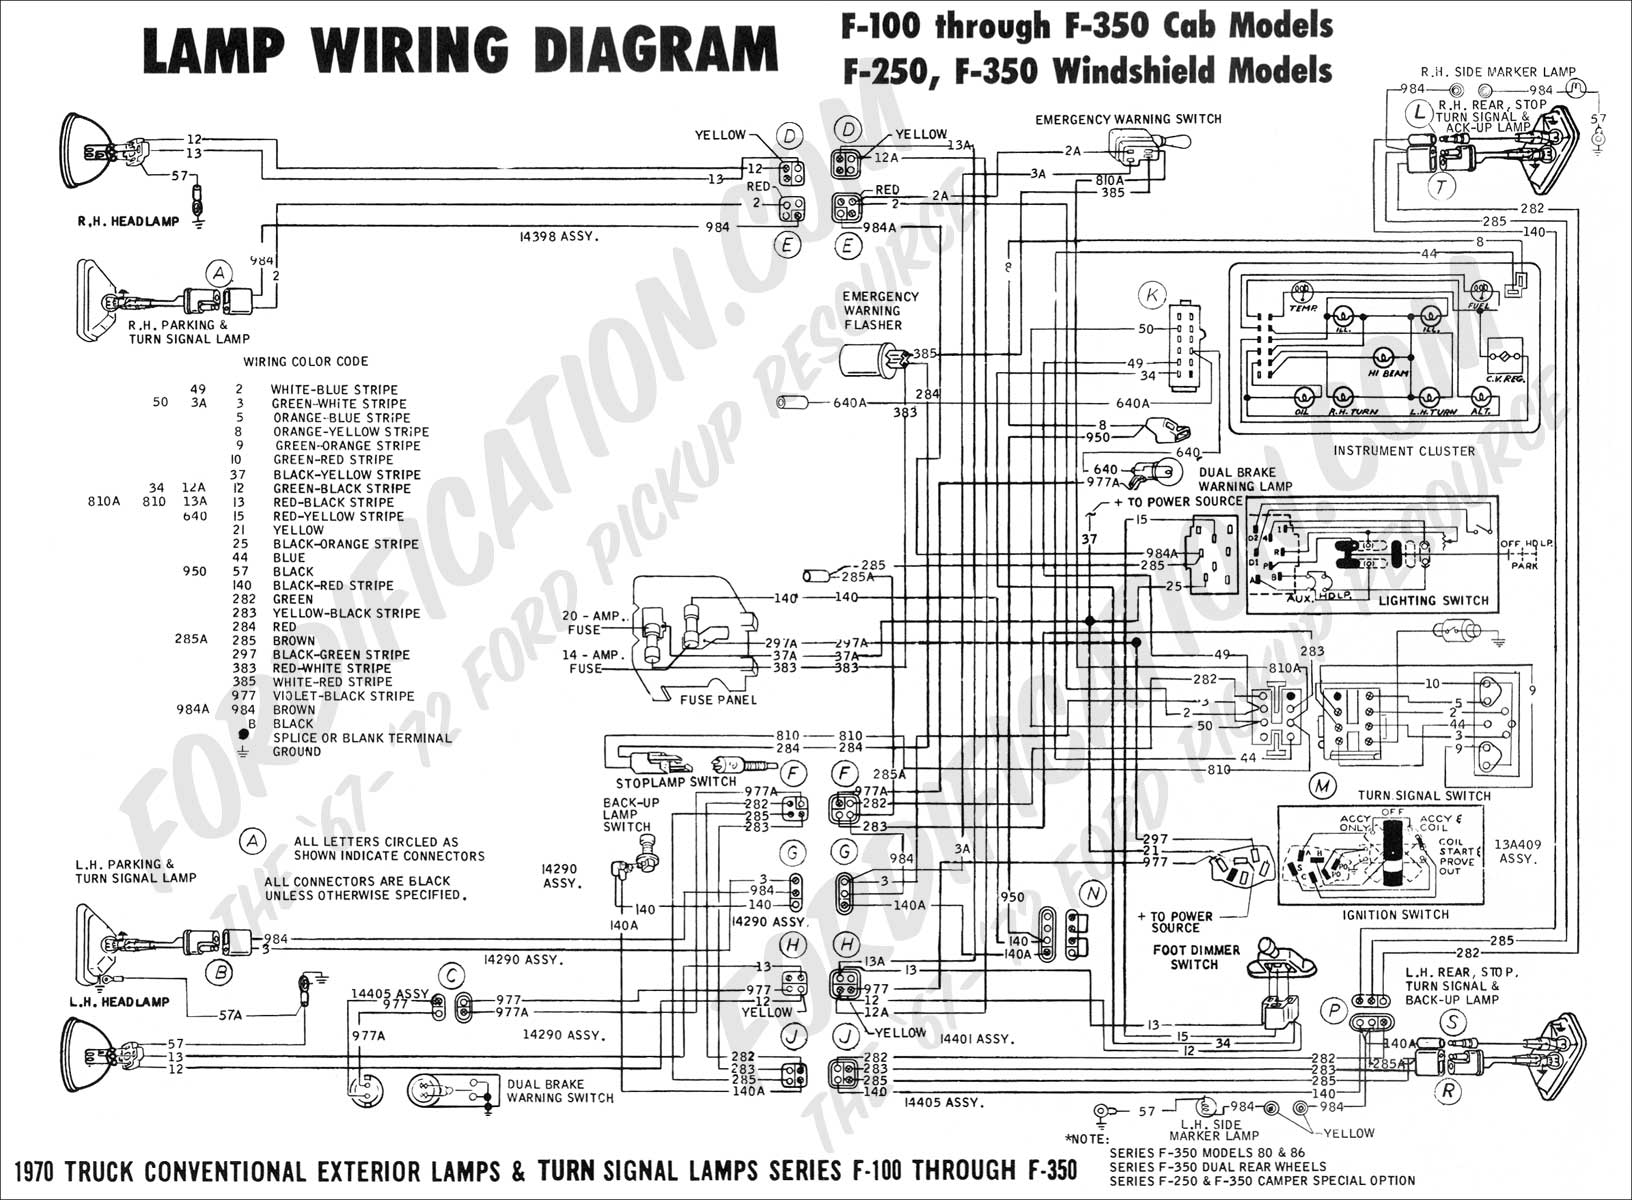 wiring diagram_70ext lights01 ford truck technical drawings and schematics section h wiring f250 wiring diagram at nearapp.co